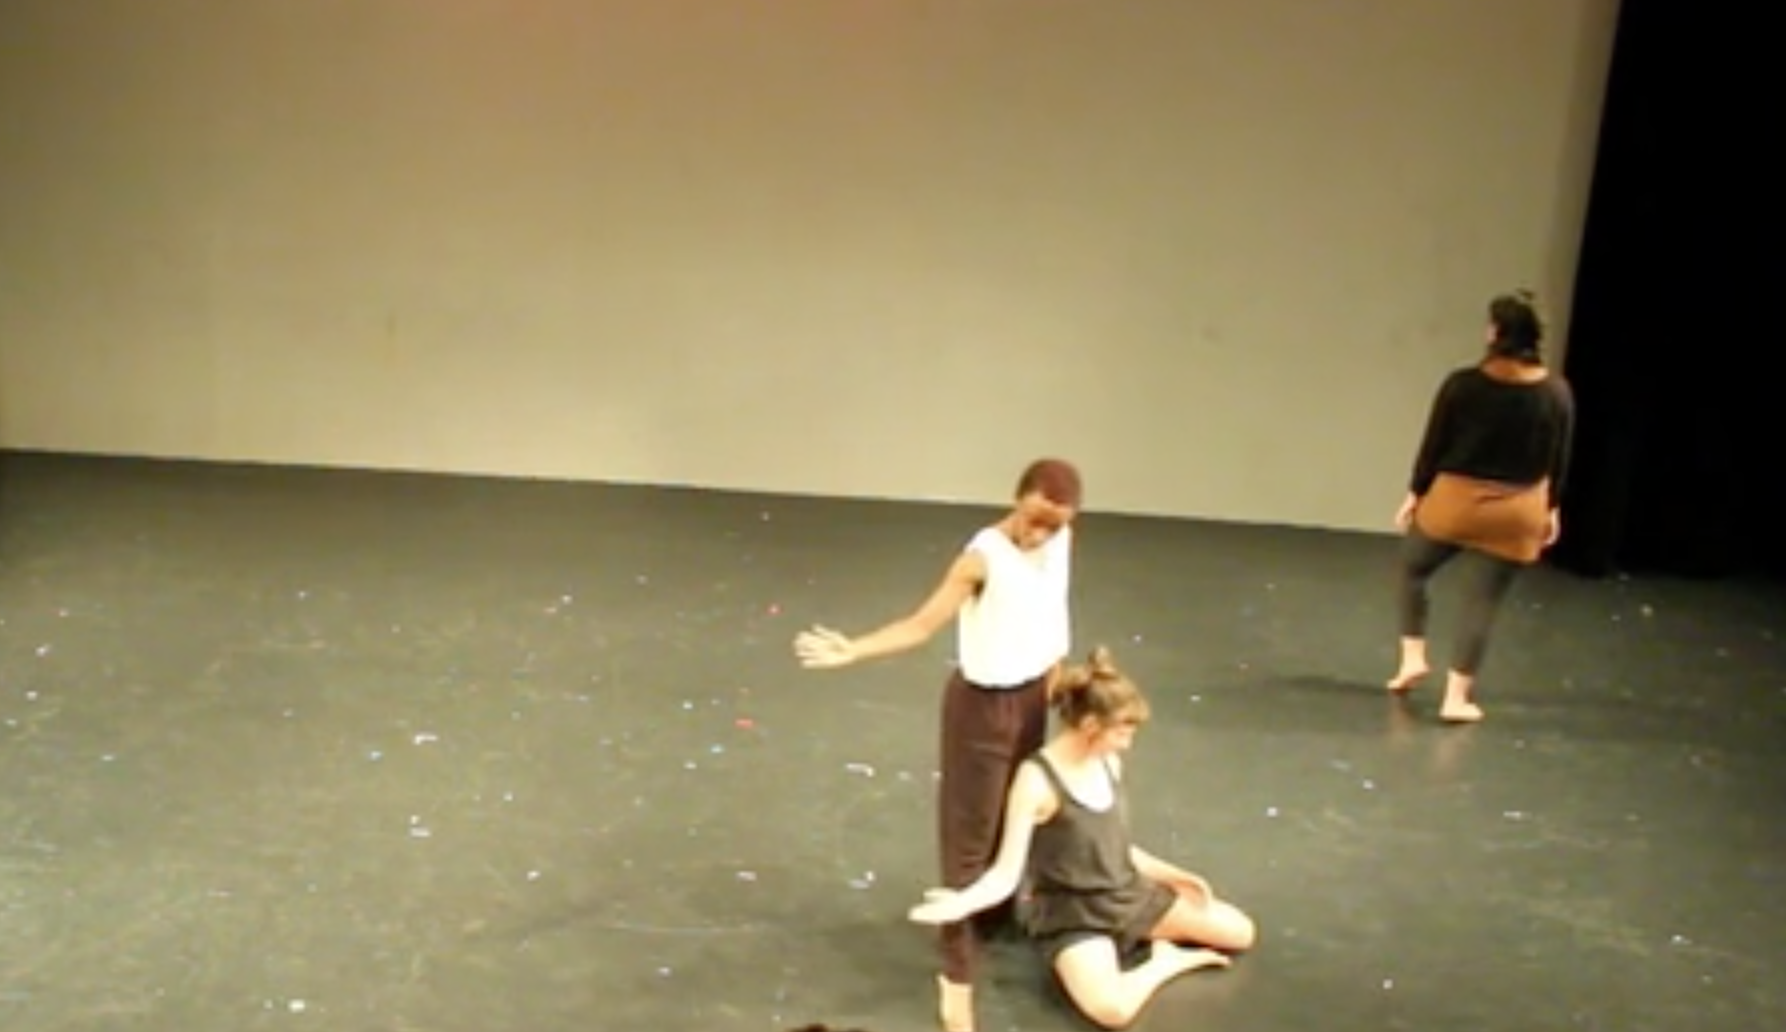 THEY CALL THESE SEASTACKS (2016) - Choreographed by Olana Flynn in collaboration with dancersPerformed by Olana Flynn, Madison Palffy, and Jennifer RobersOriginal Score performed live by Sean DuramDeveloped while in residence May 2016 at The Denmark Arts Center in Denmark, MEPerformed in New York, NY. Video courtesy of Dixon Place.Watch Here